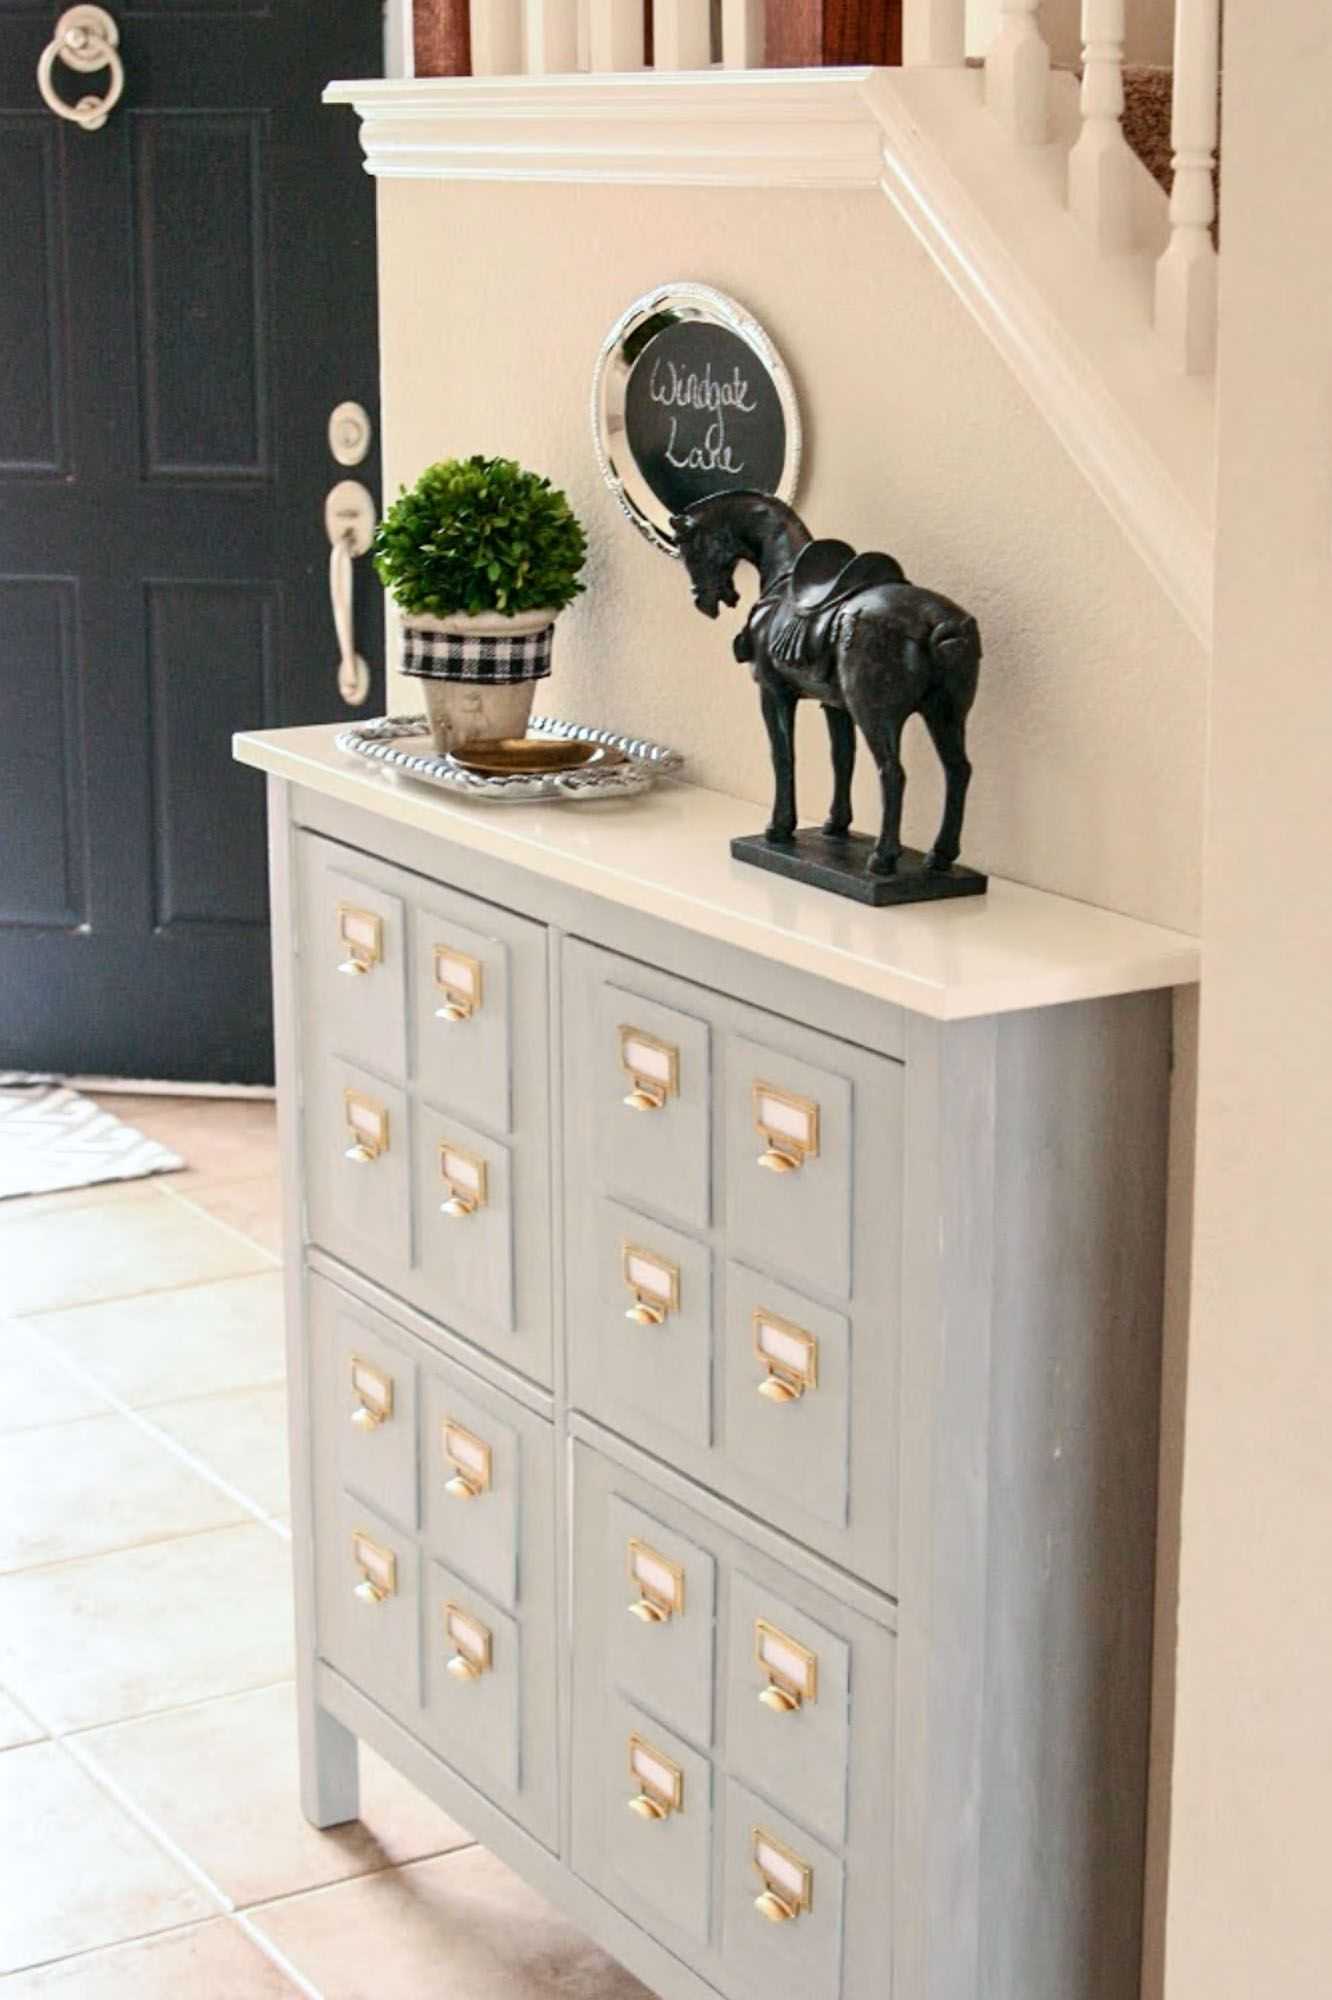 Solves My Shoe Problem For The Front Door AND My Lusting After A Library  Card Catalog. Faux Card Catalog Created From An IKEA Shoe Storage Cabinet!